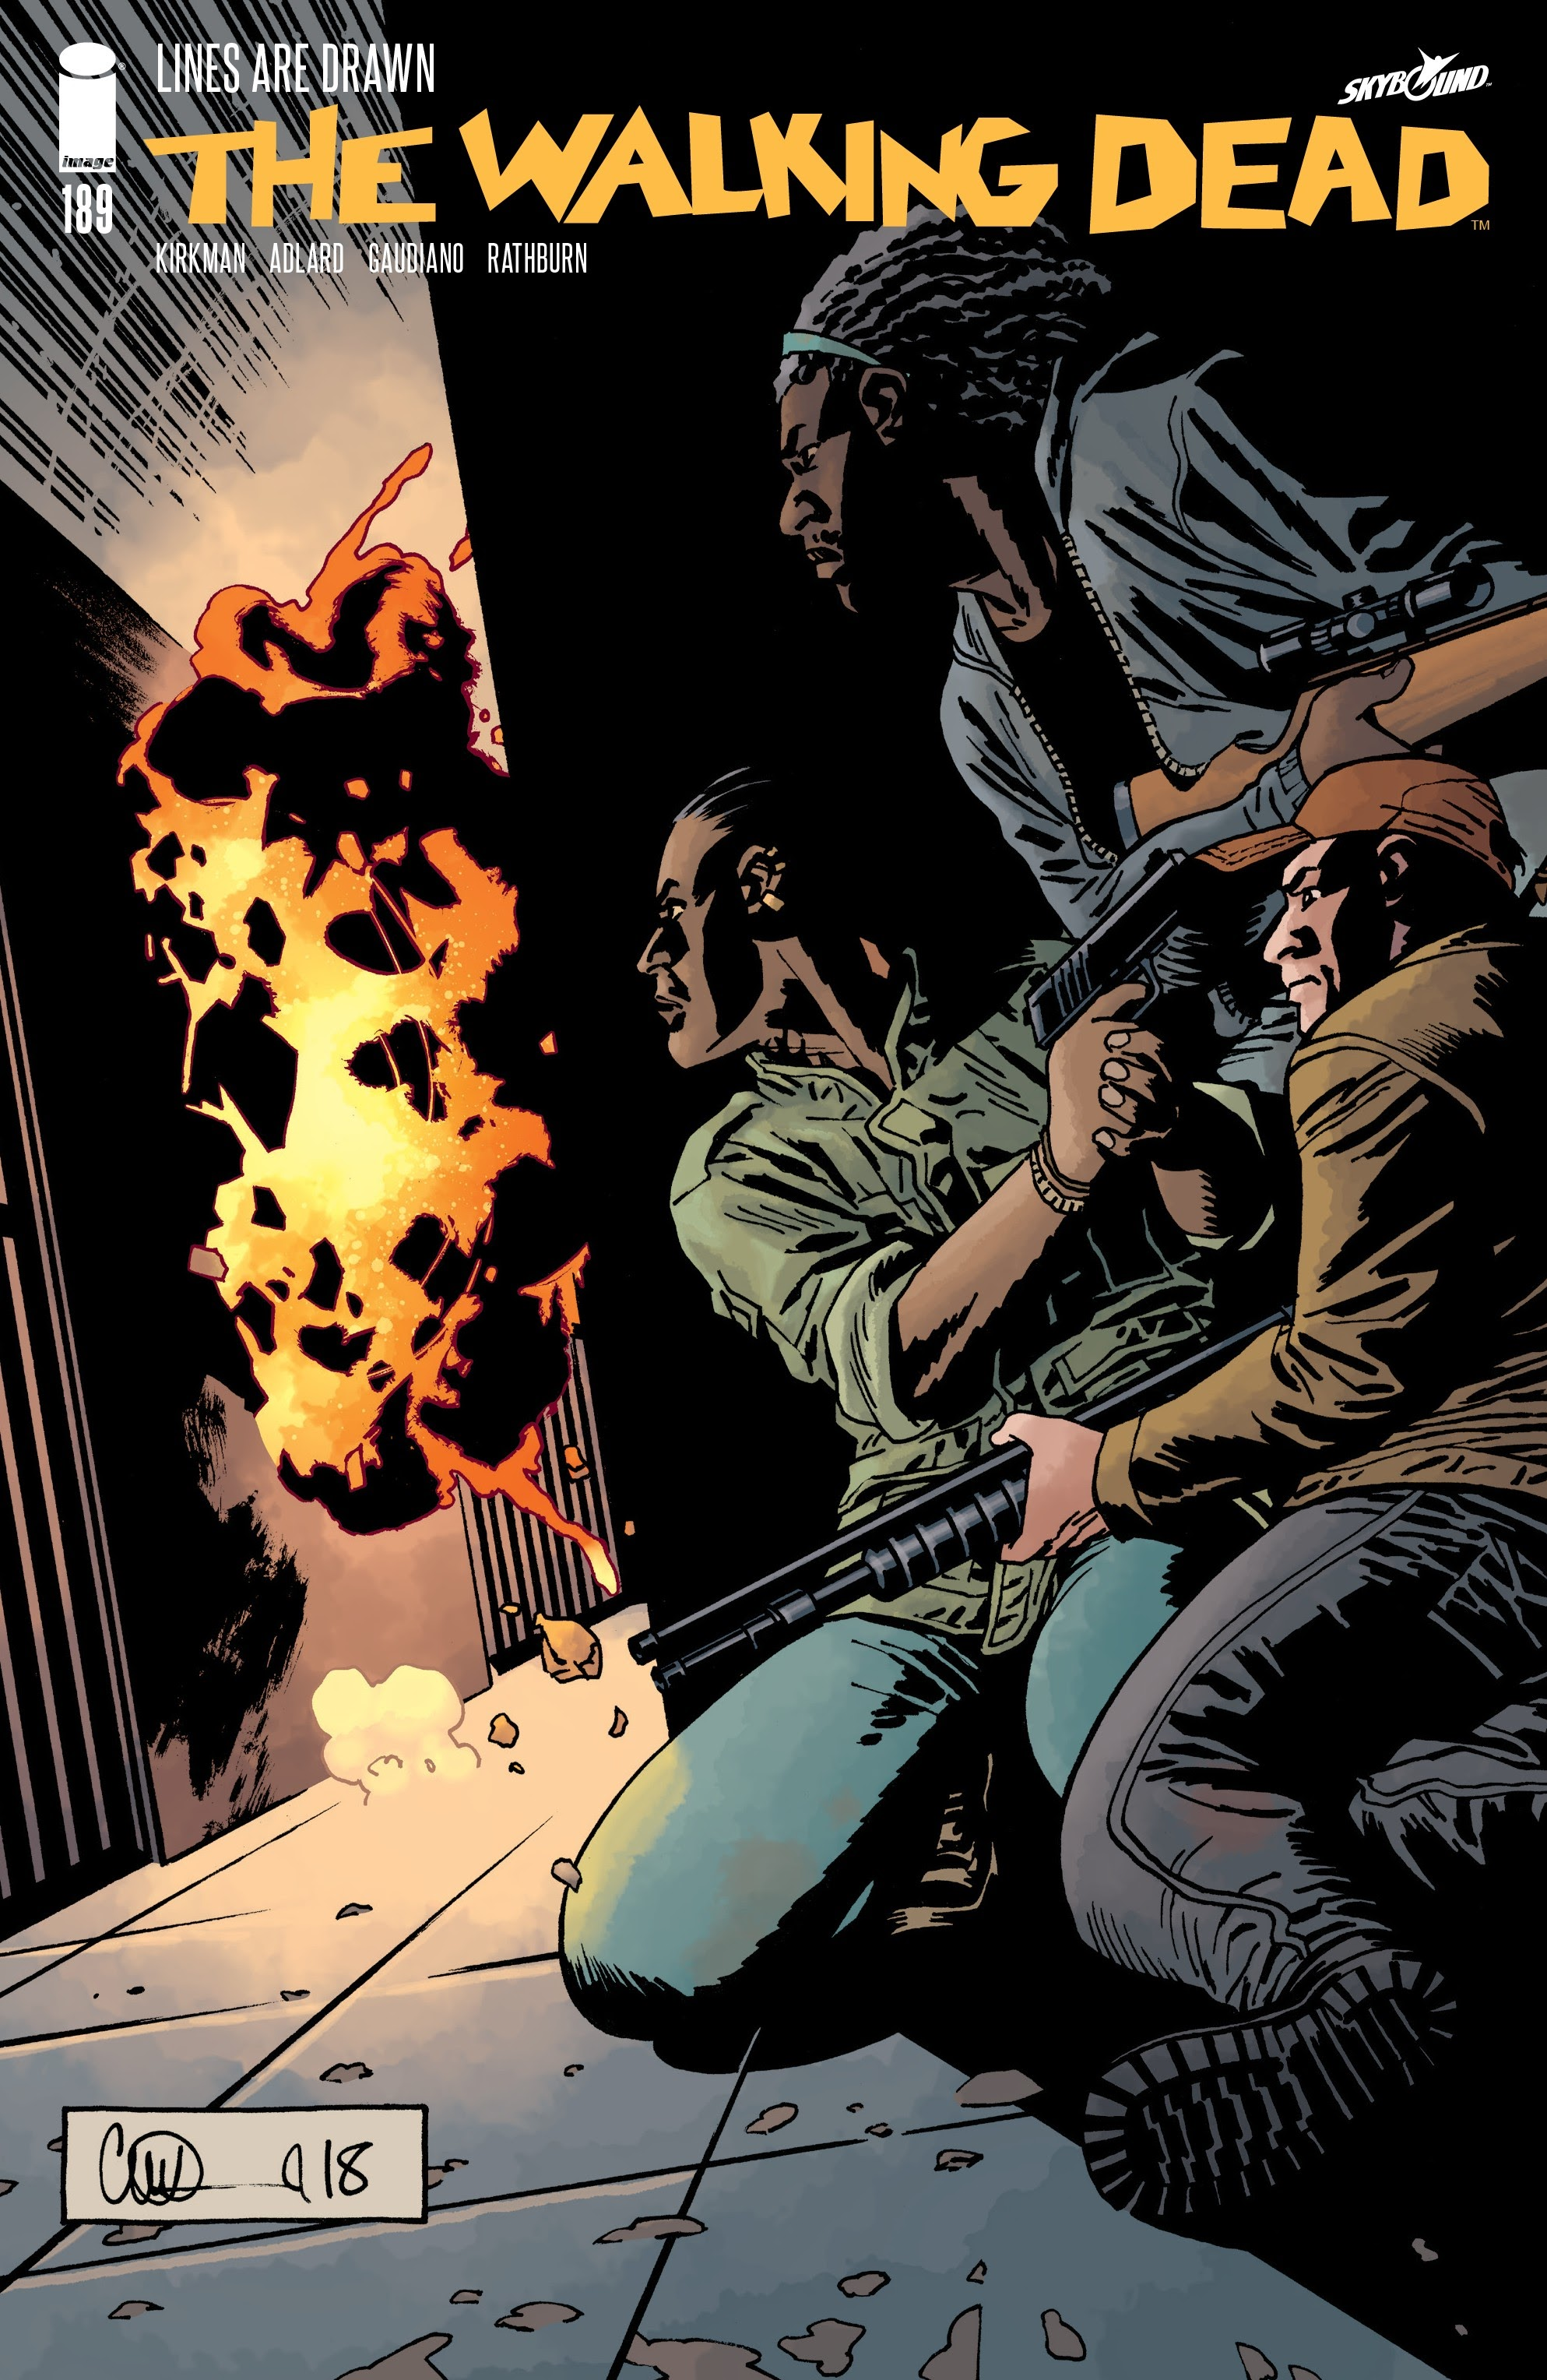 The Walking Dead 189 Page 1